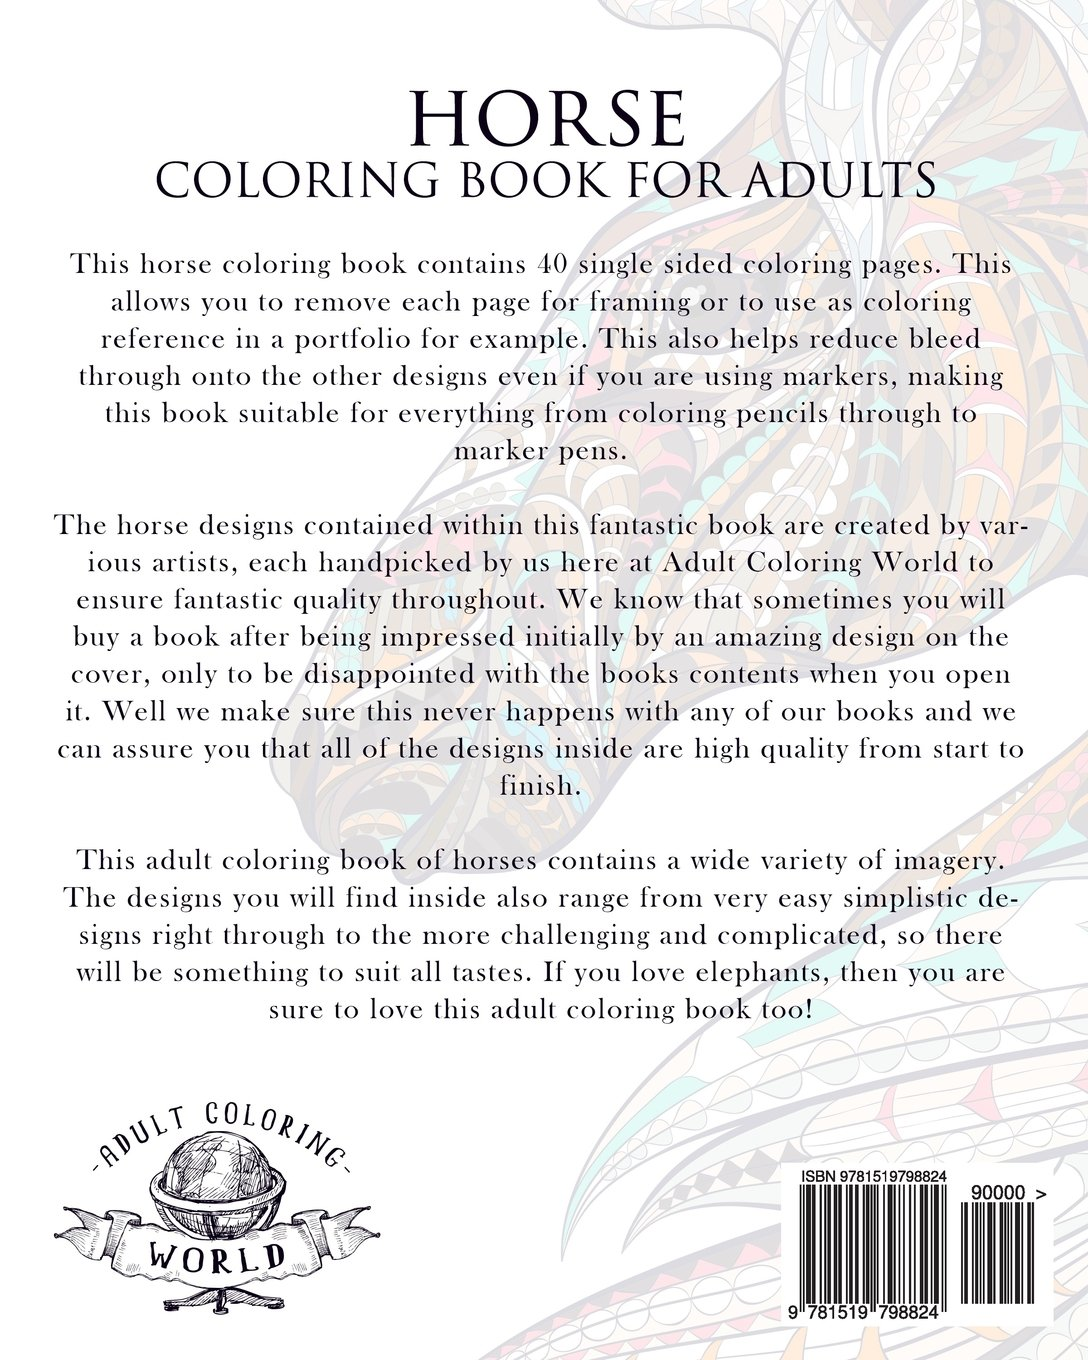 Amazon.com: Horse Coloring Book For Adults: An Adult Coloring Book ...